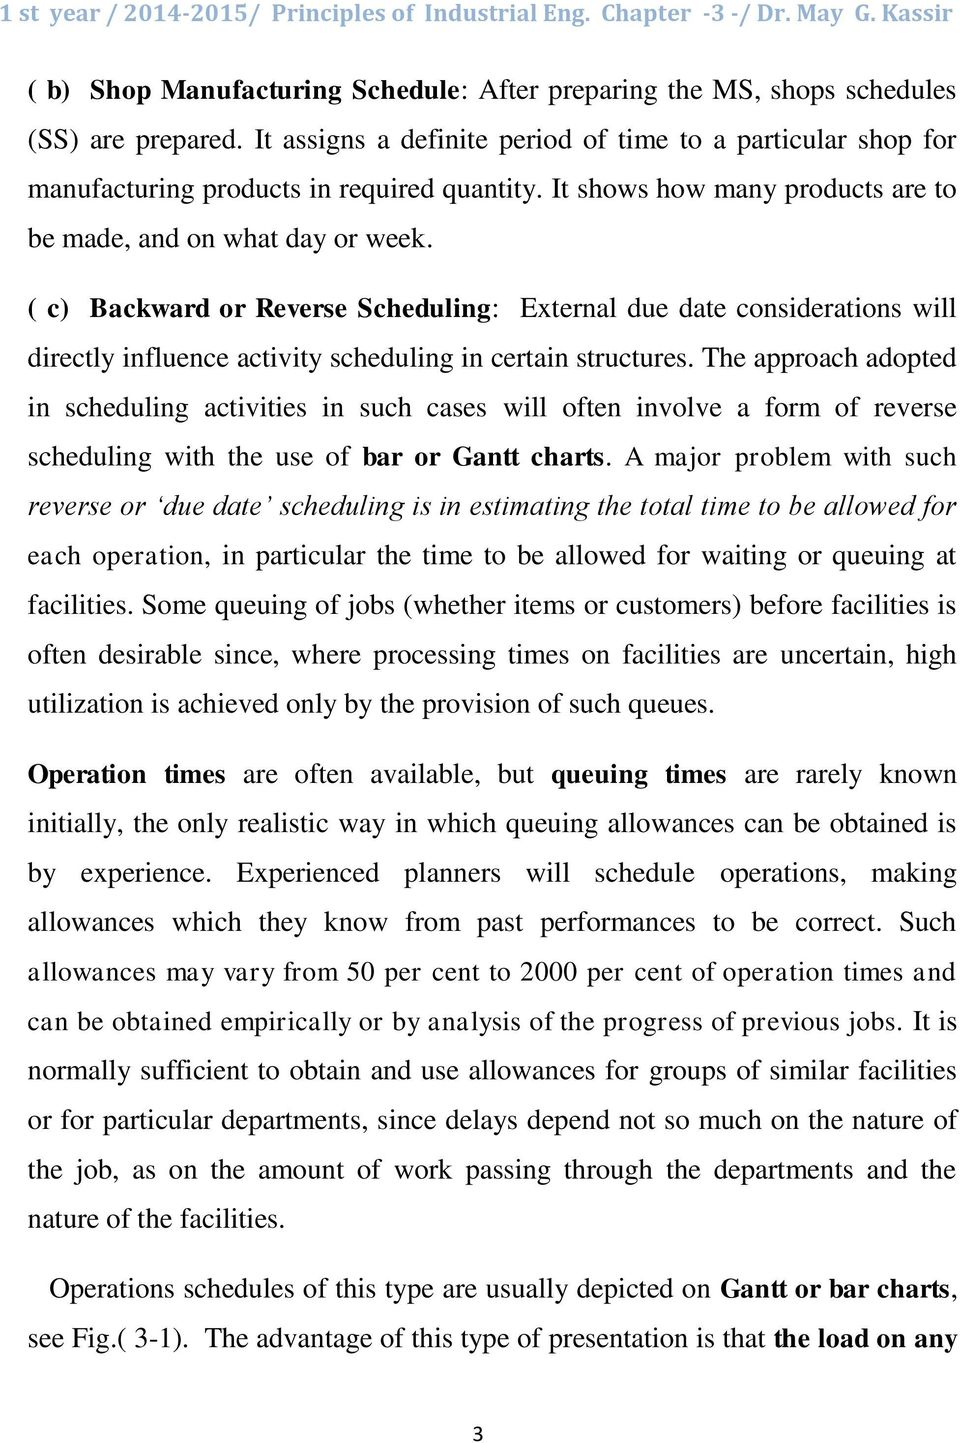 ( c) Backward or Reverse Scheduling: External due date considerations will directly influence activity scheduling in certain structures.